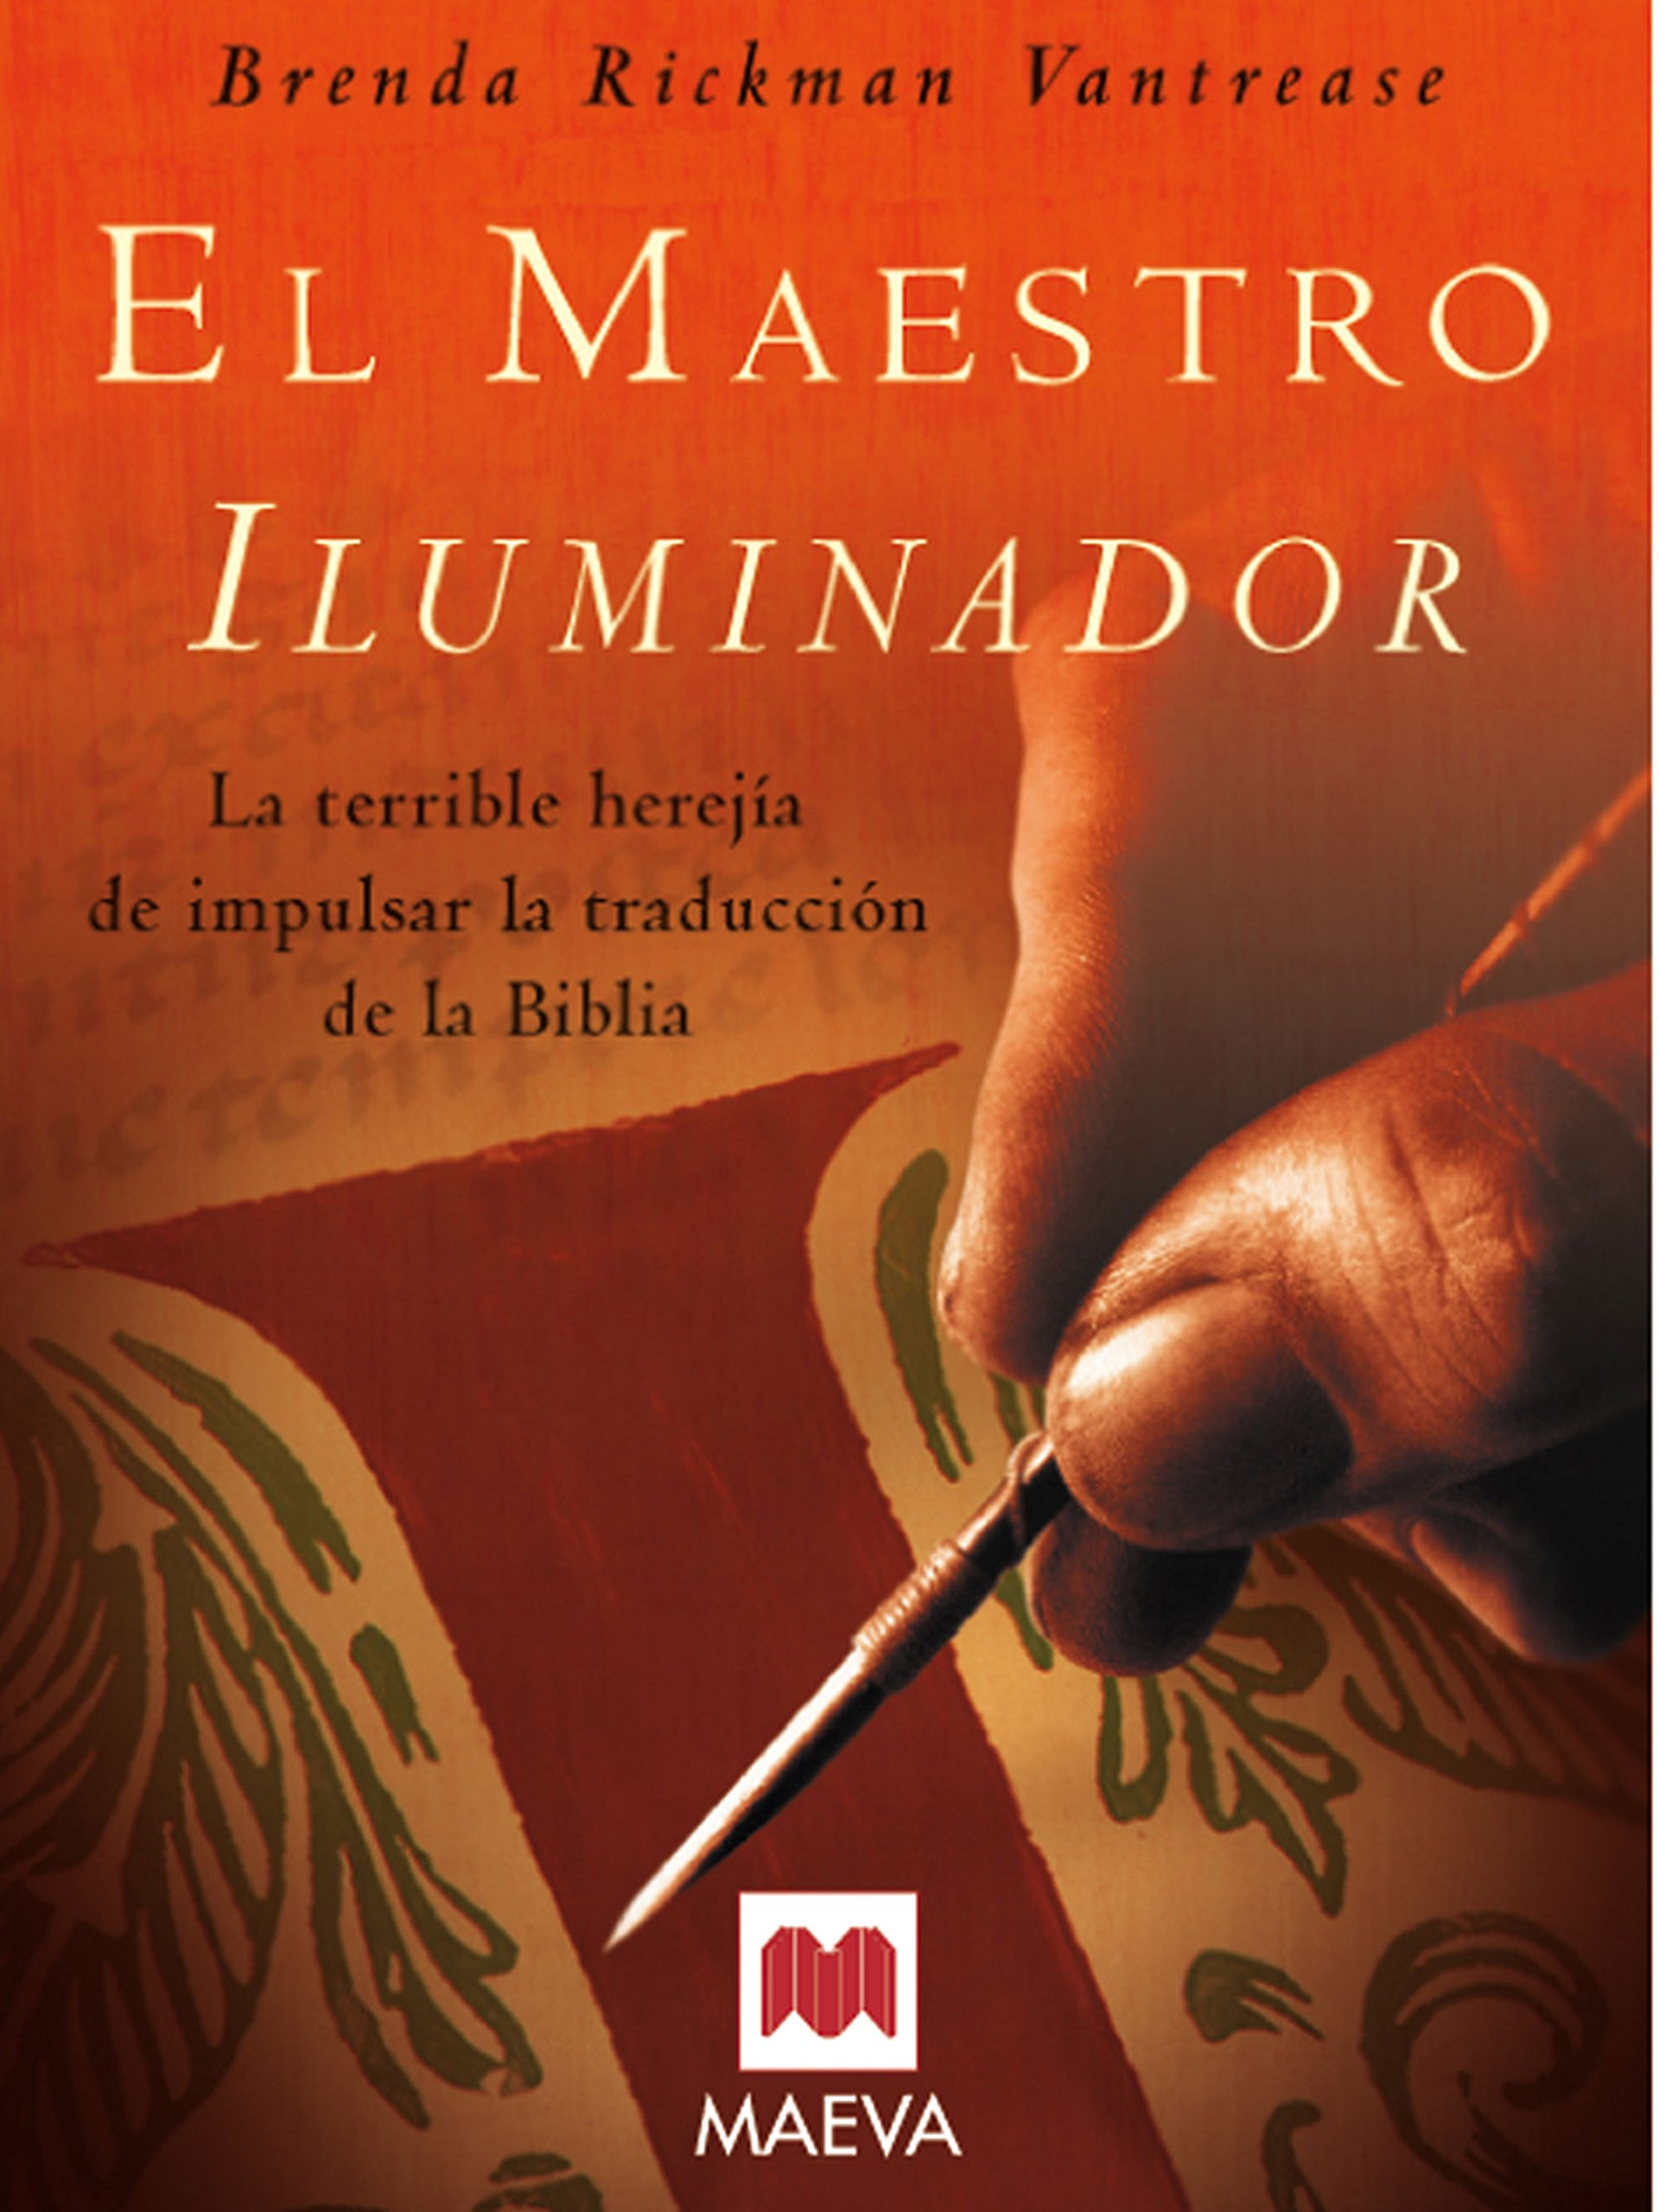 El Maestro Iluminador/the Illuminating Teacher (Nueva Historia) (Spanish  Edition): Brenda Rickman Vantrease: 9788496231405: Amazon.com: Books